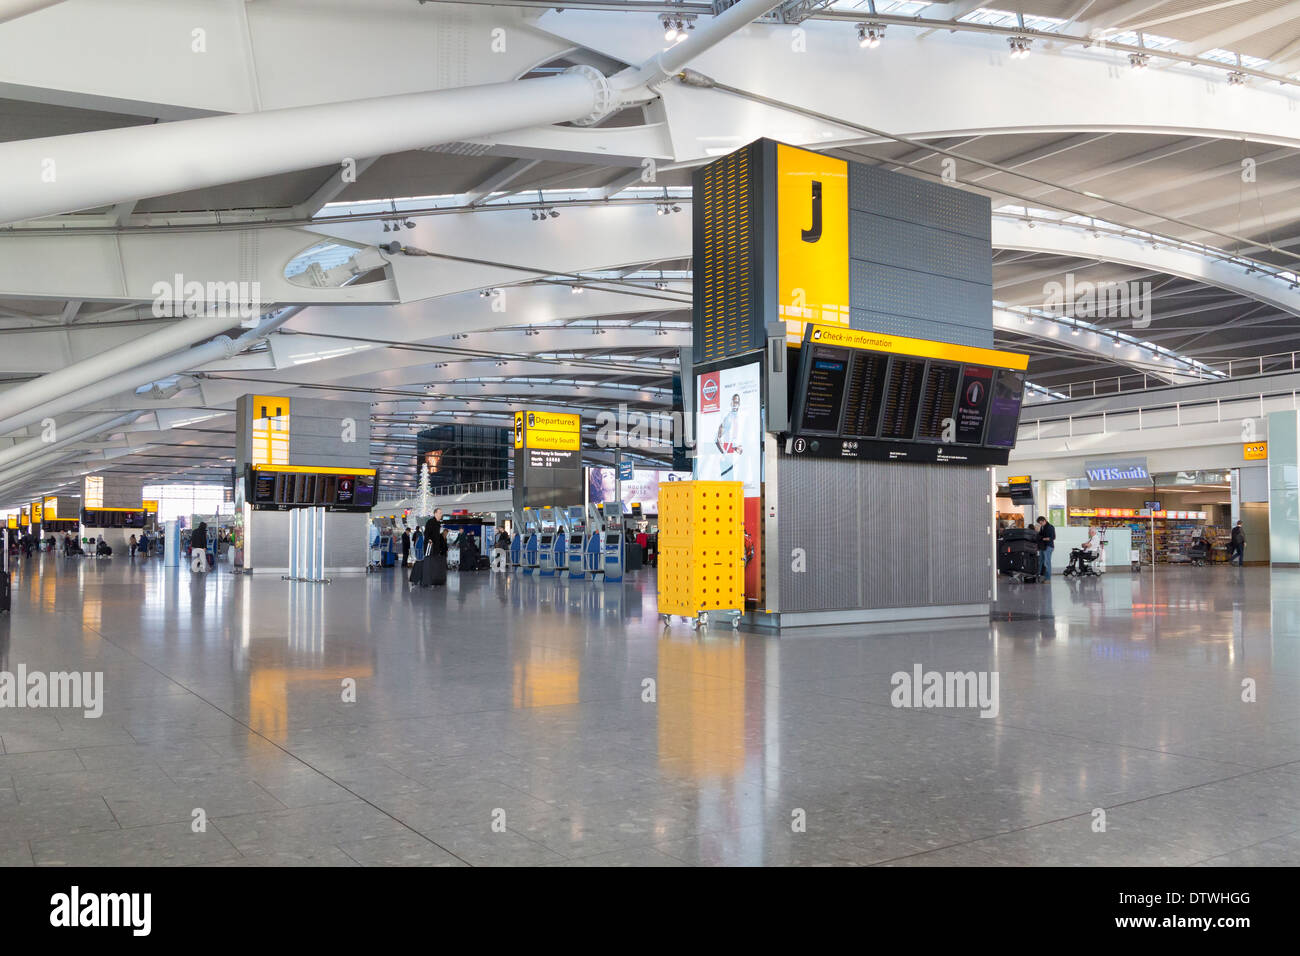 Check in hall at Heathrow airport terminal 5, London, UK - Stock Image